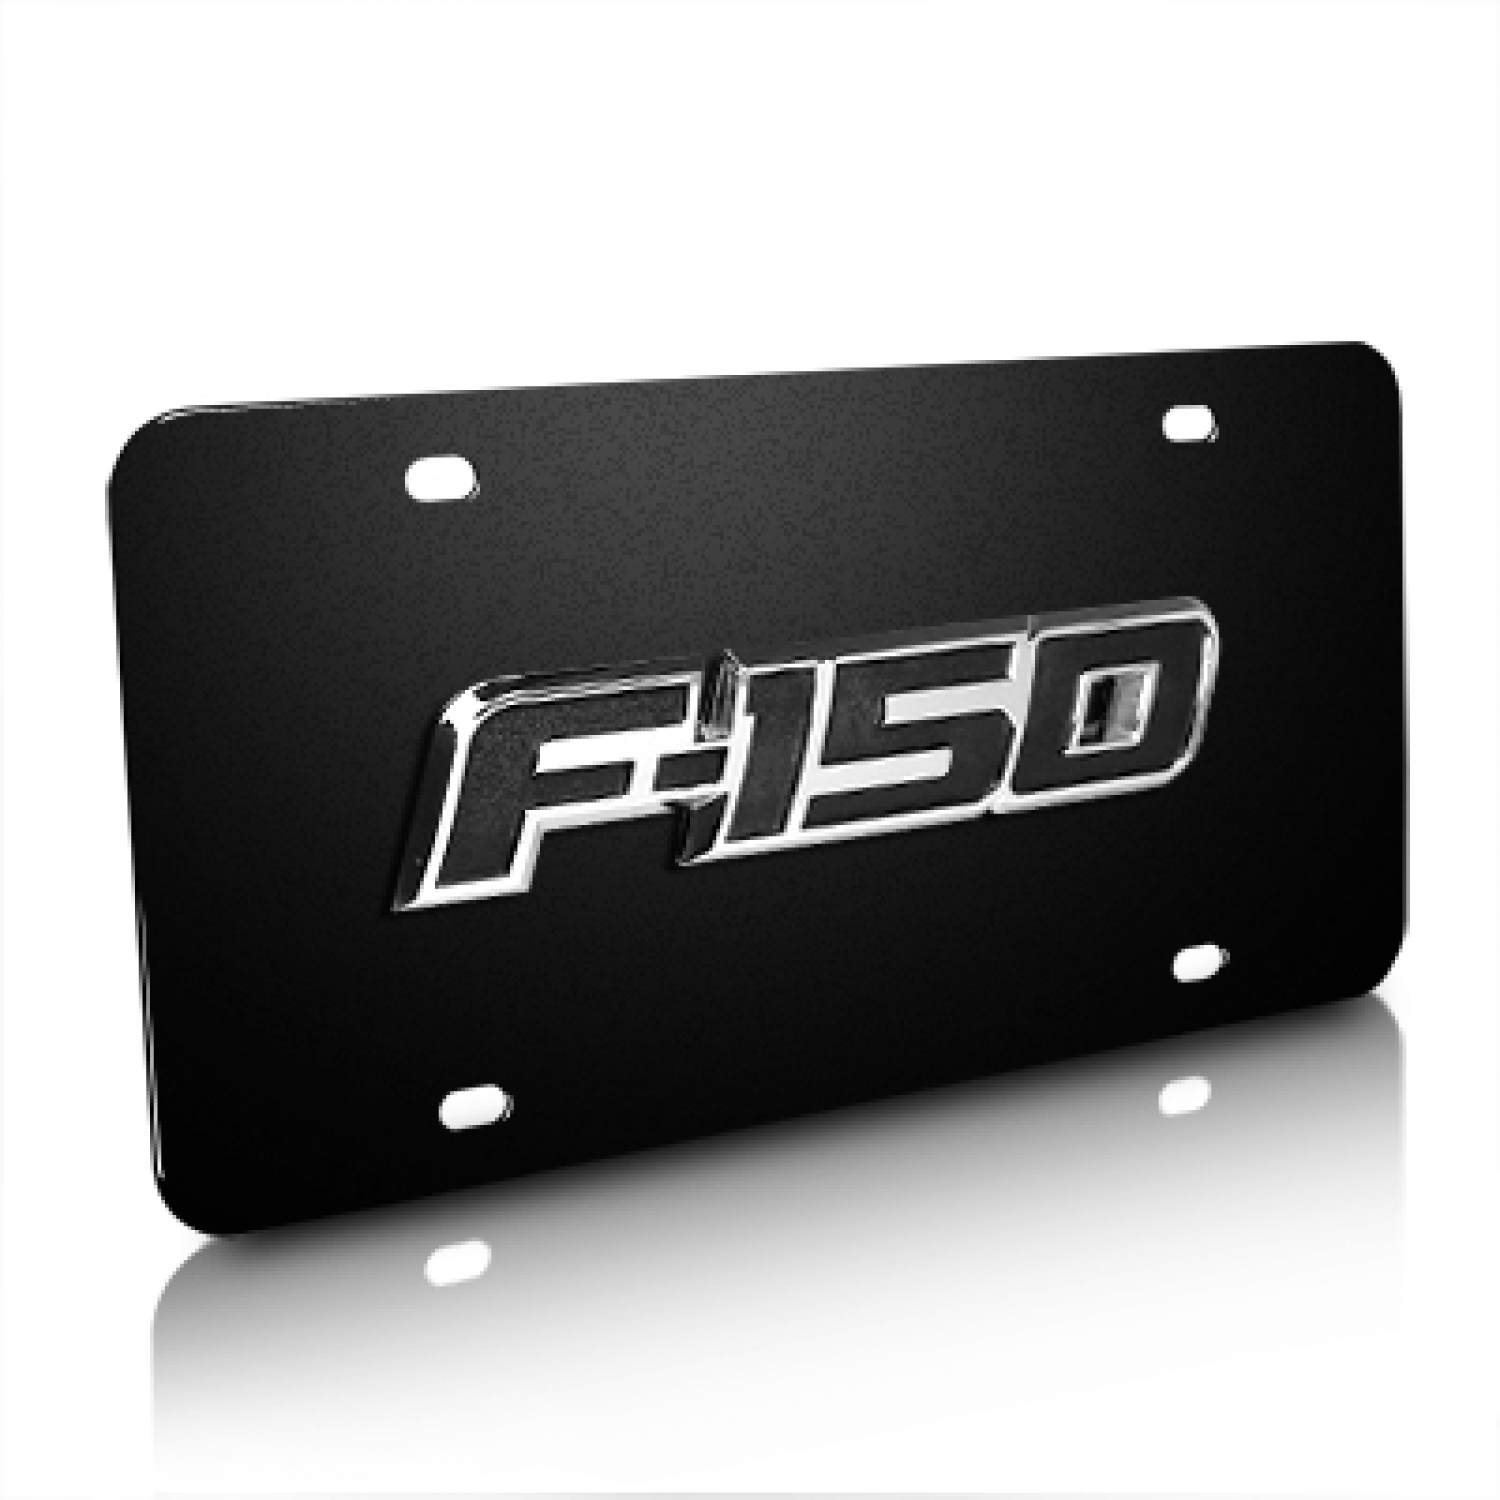 Ford F-150 3D Logo Black Stainless Steel License Plate